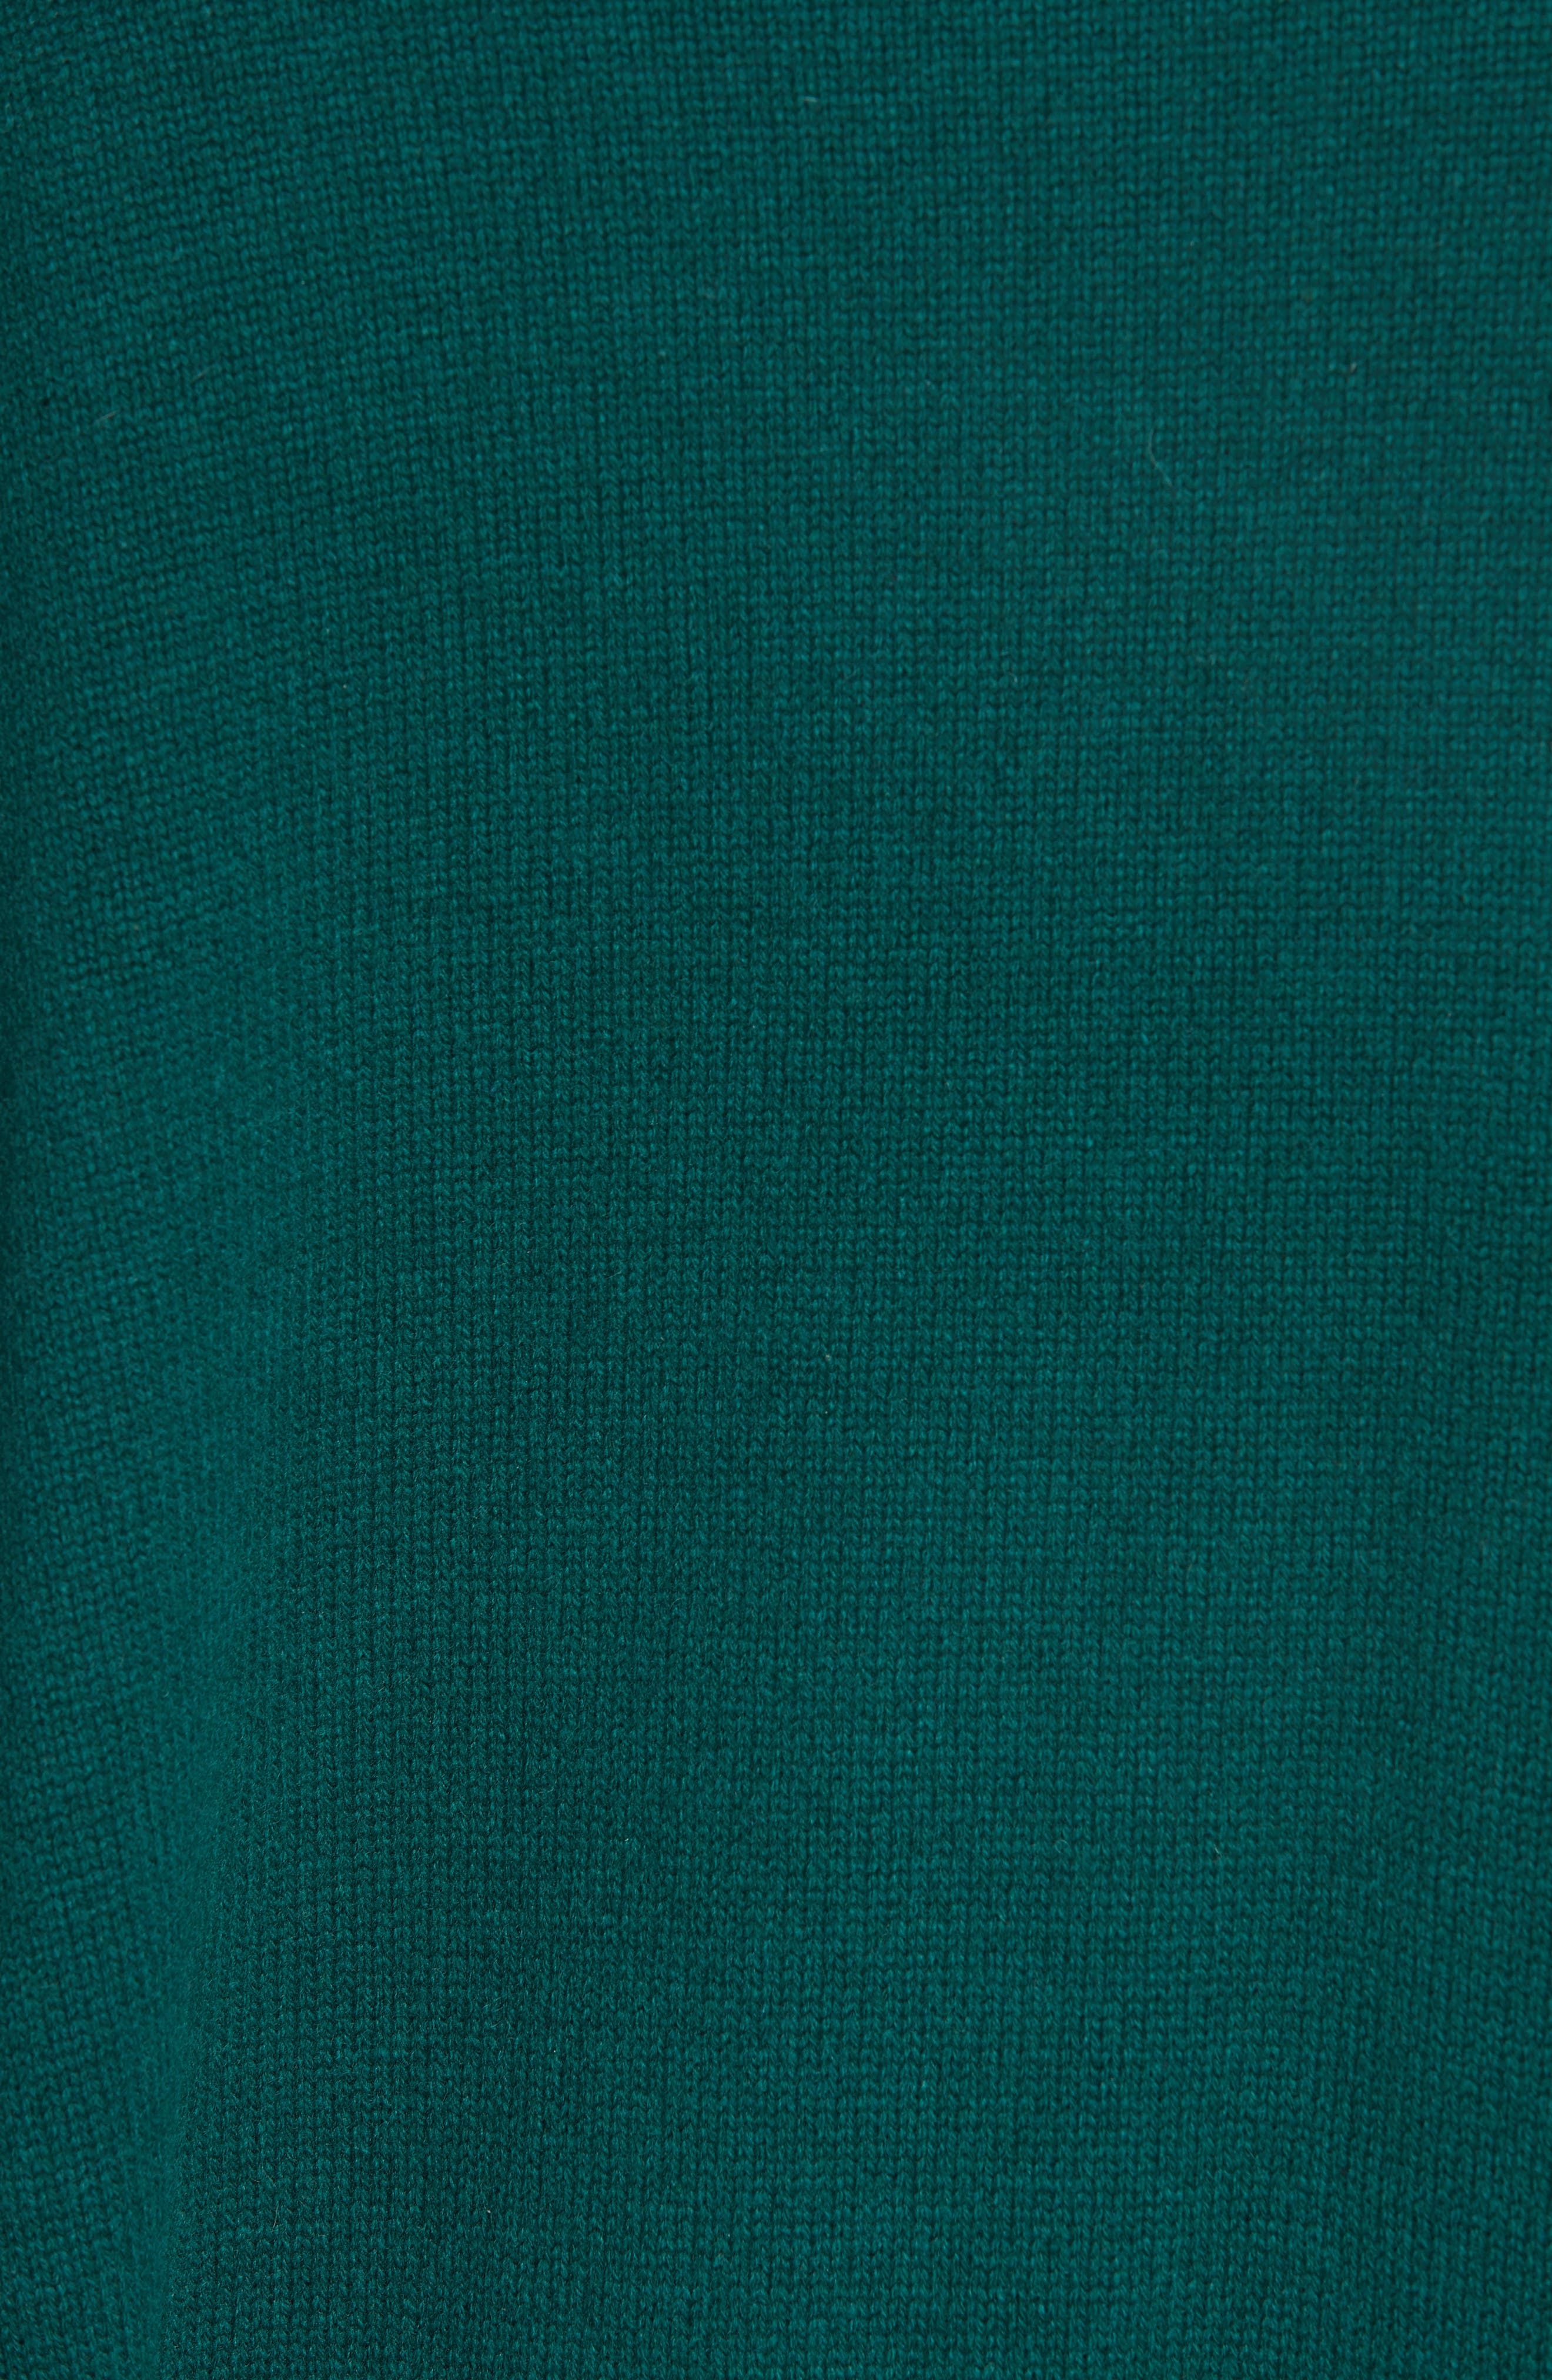 Cashmere & Wool Blend Oversize Sweater,                             Alternate thumbnail 5, color,                             PINE